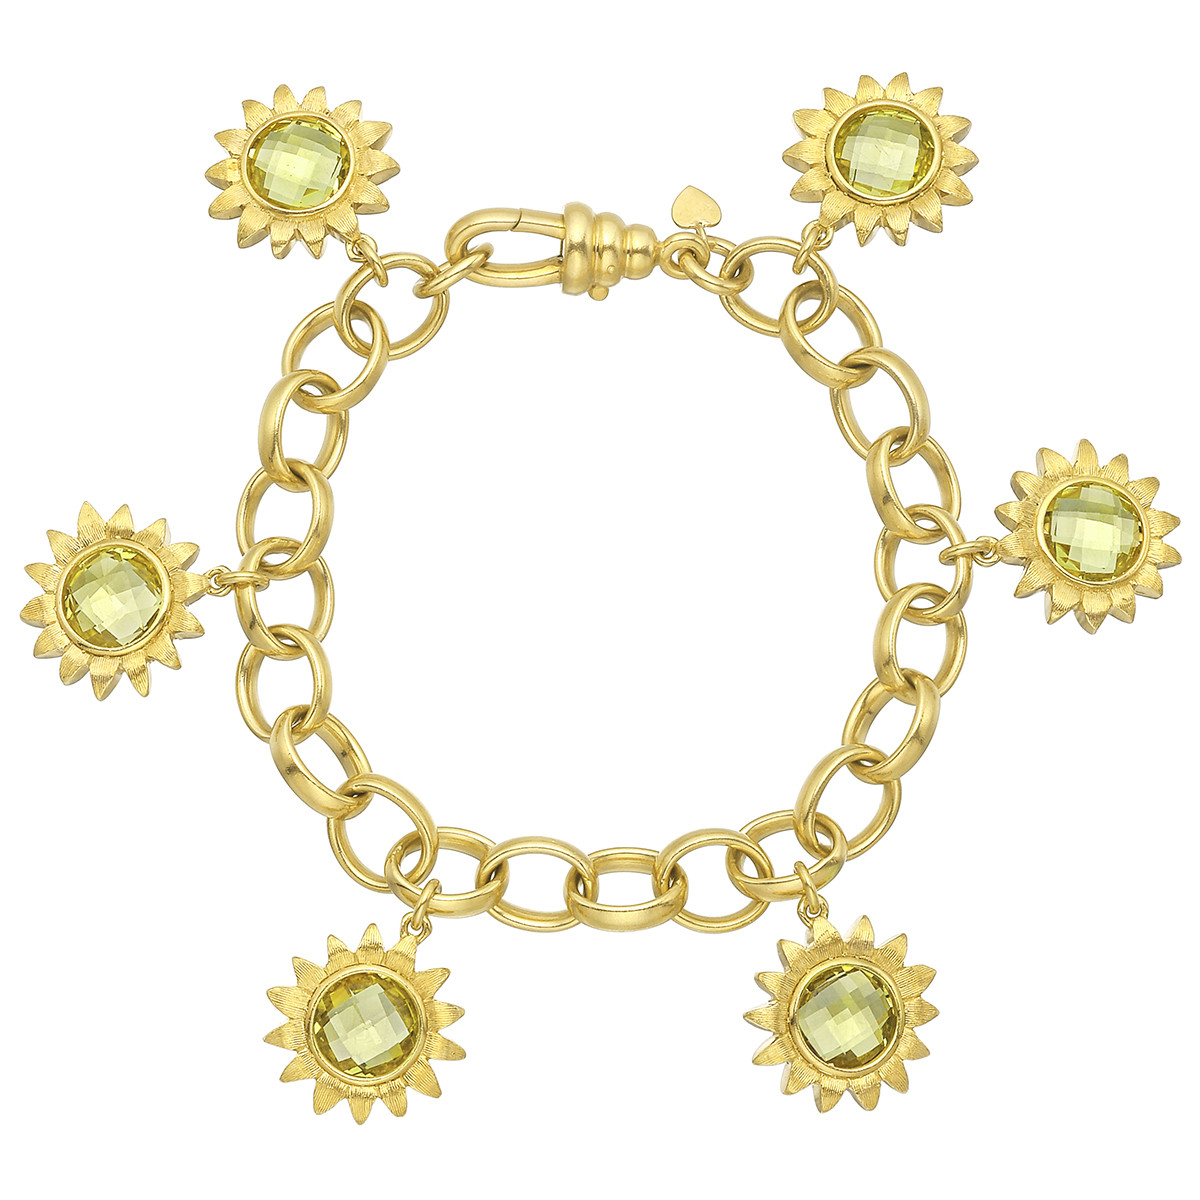 18k Yellow Gold & Peridot Sunflower Charm Bracelet